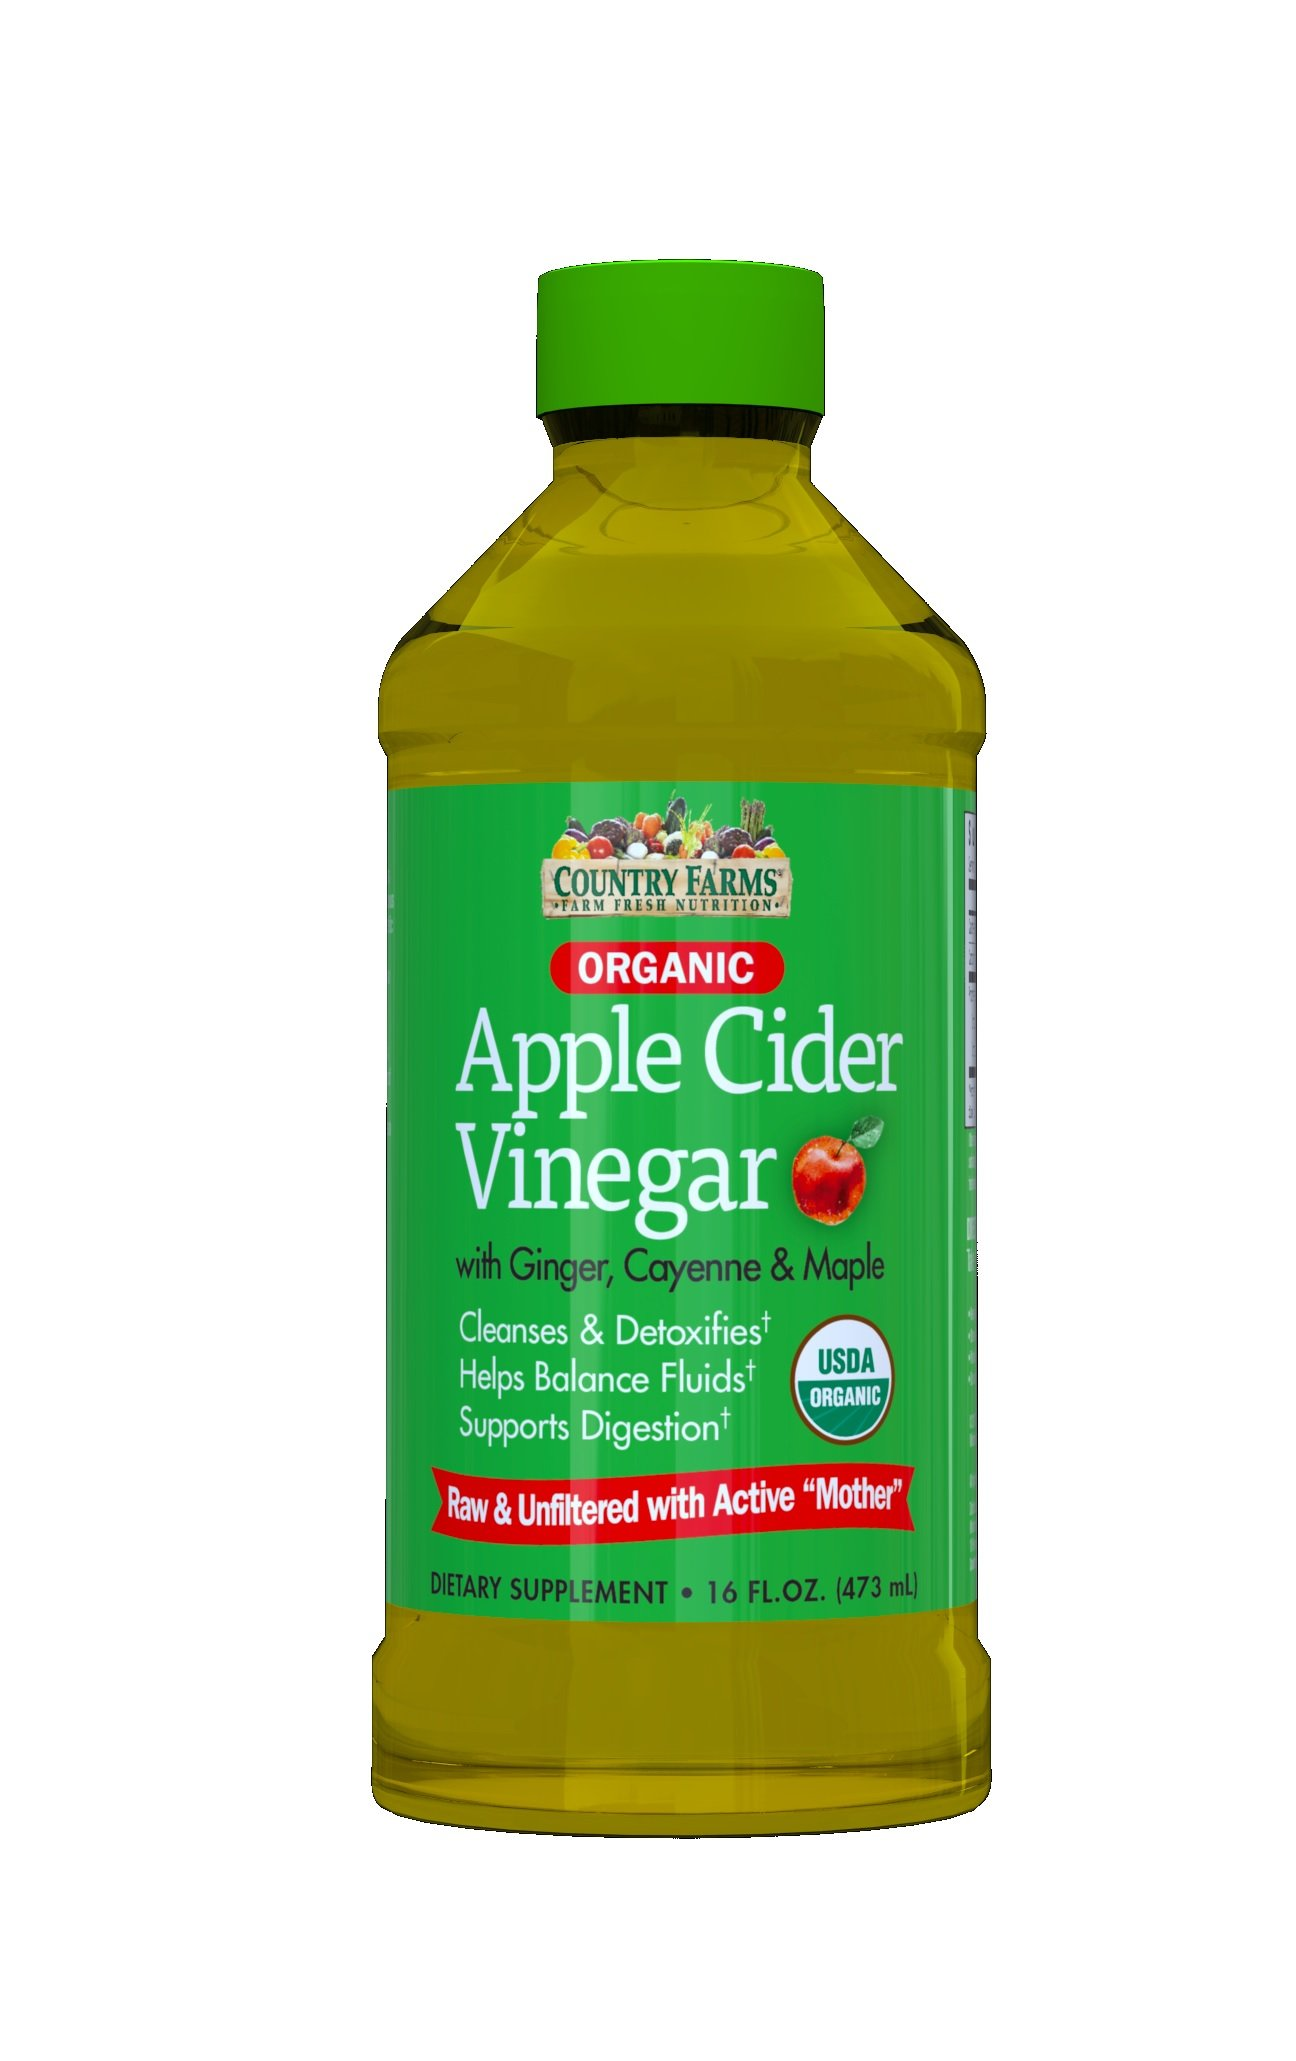 Country Farms Organic Apple Cider Vinegar, 16oz Each (Pack of 2) by Country Farms